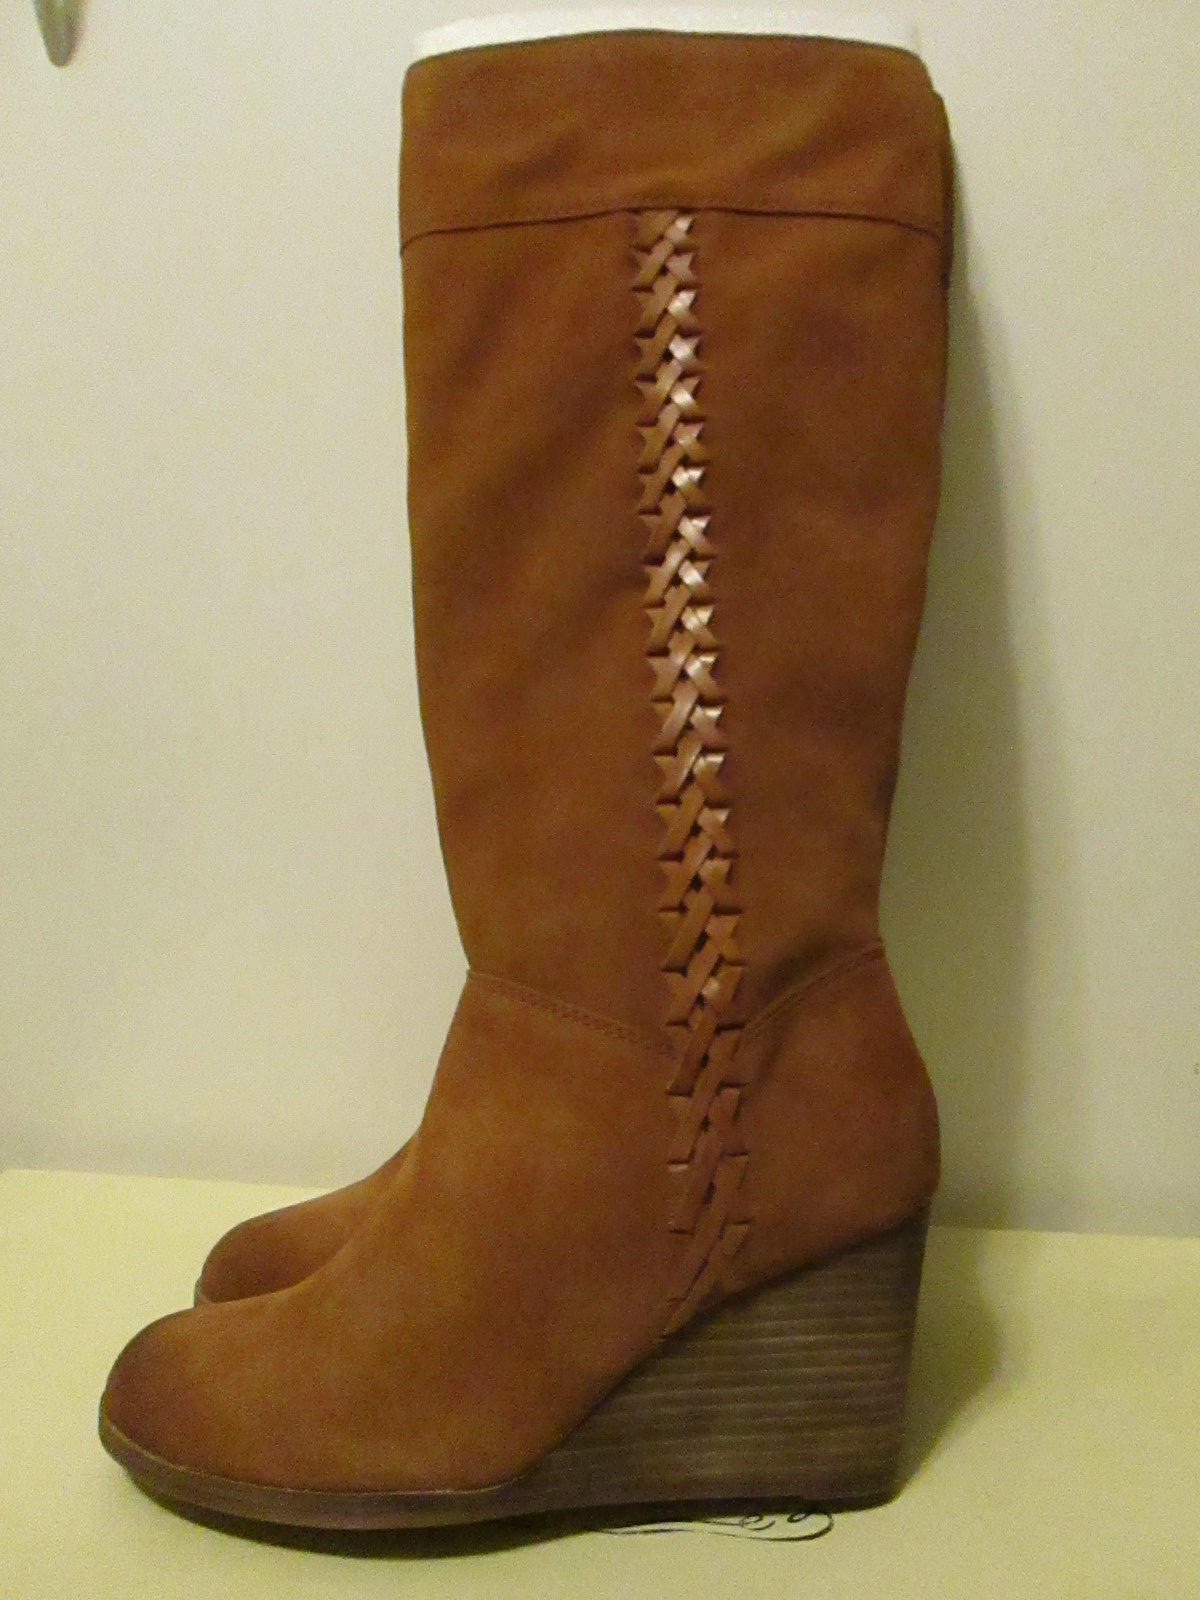 219 Lucky Brand Sanna Sanna Brand Bombay Brown Suede Leather Wedge Knee High Boots 8.5 c0d782